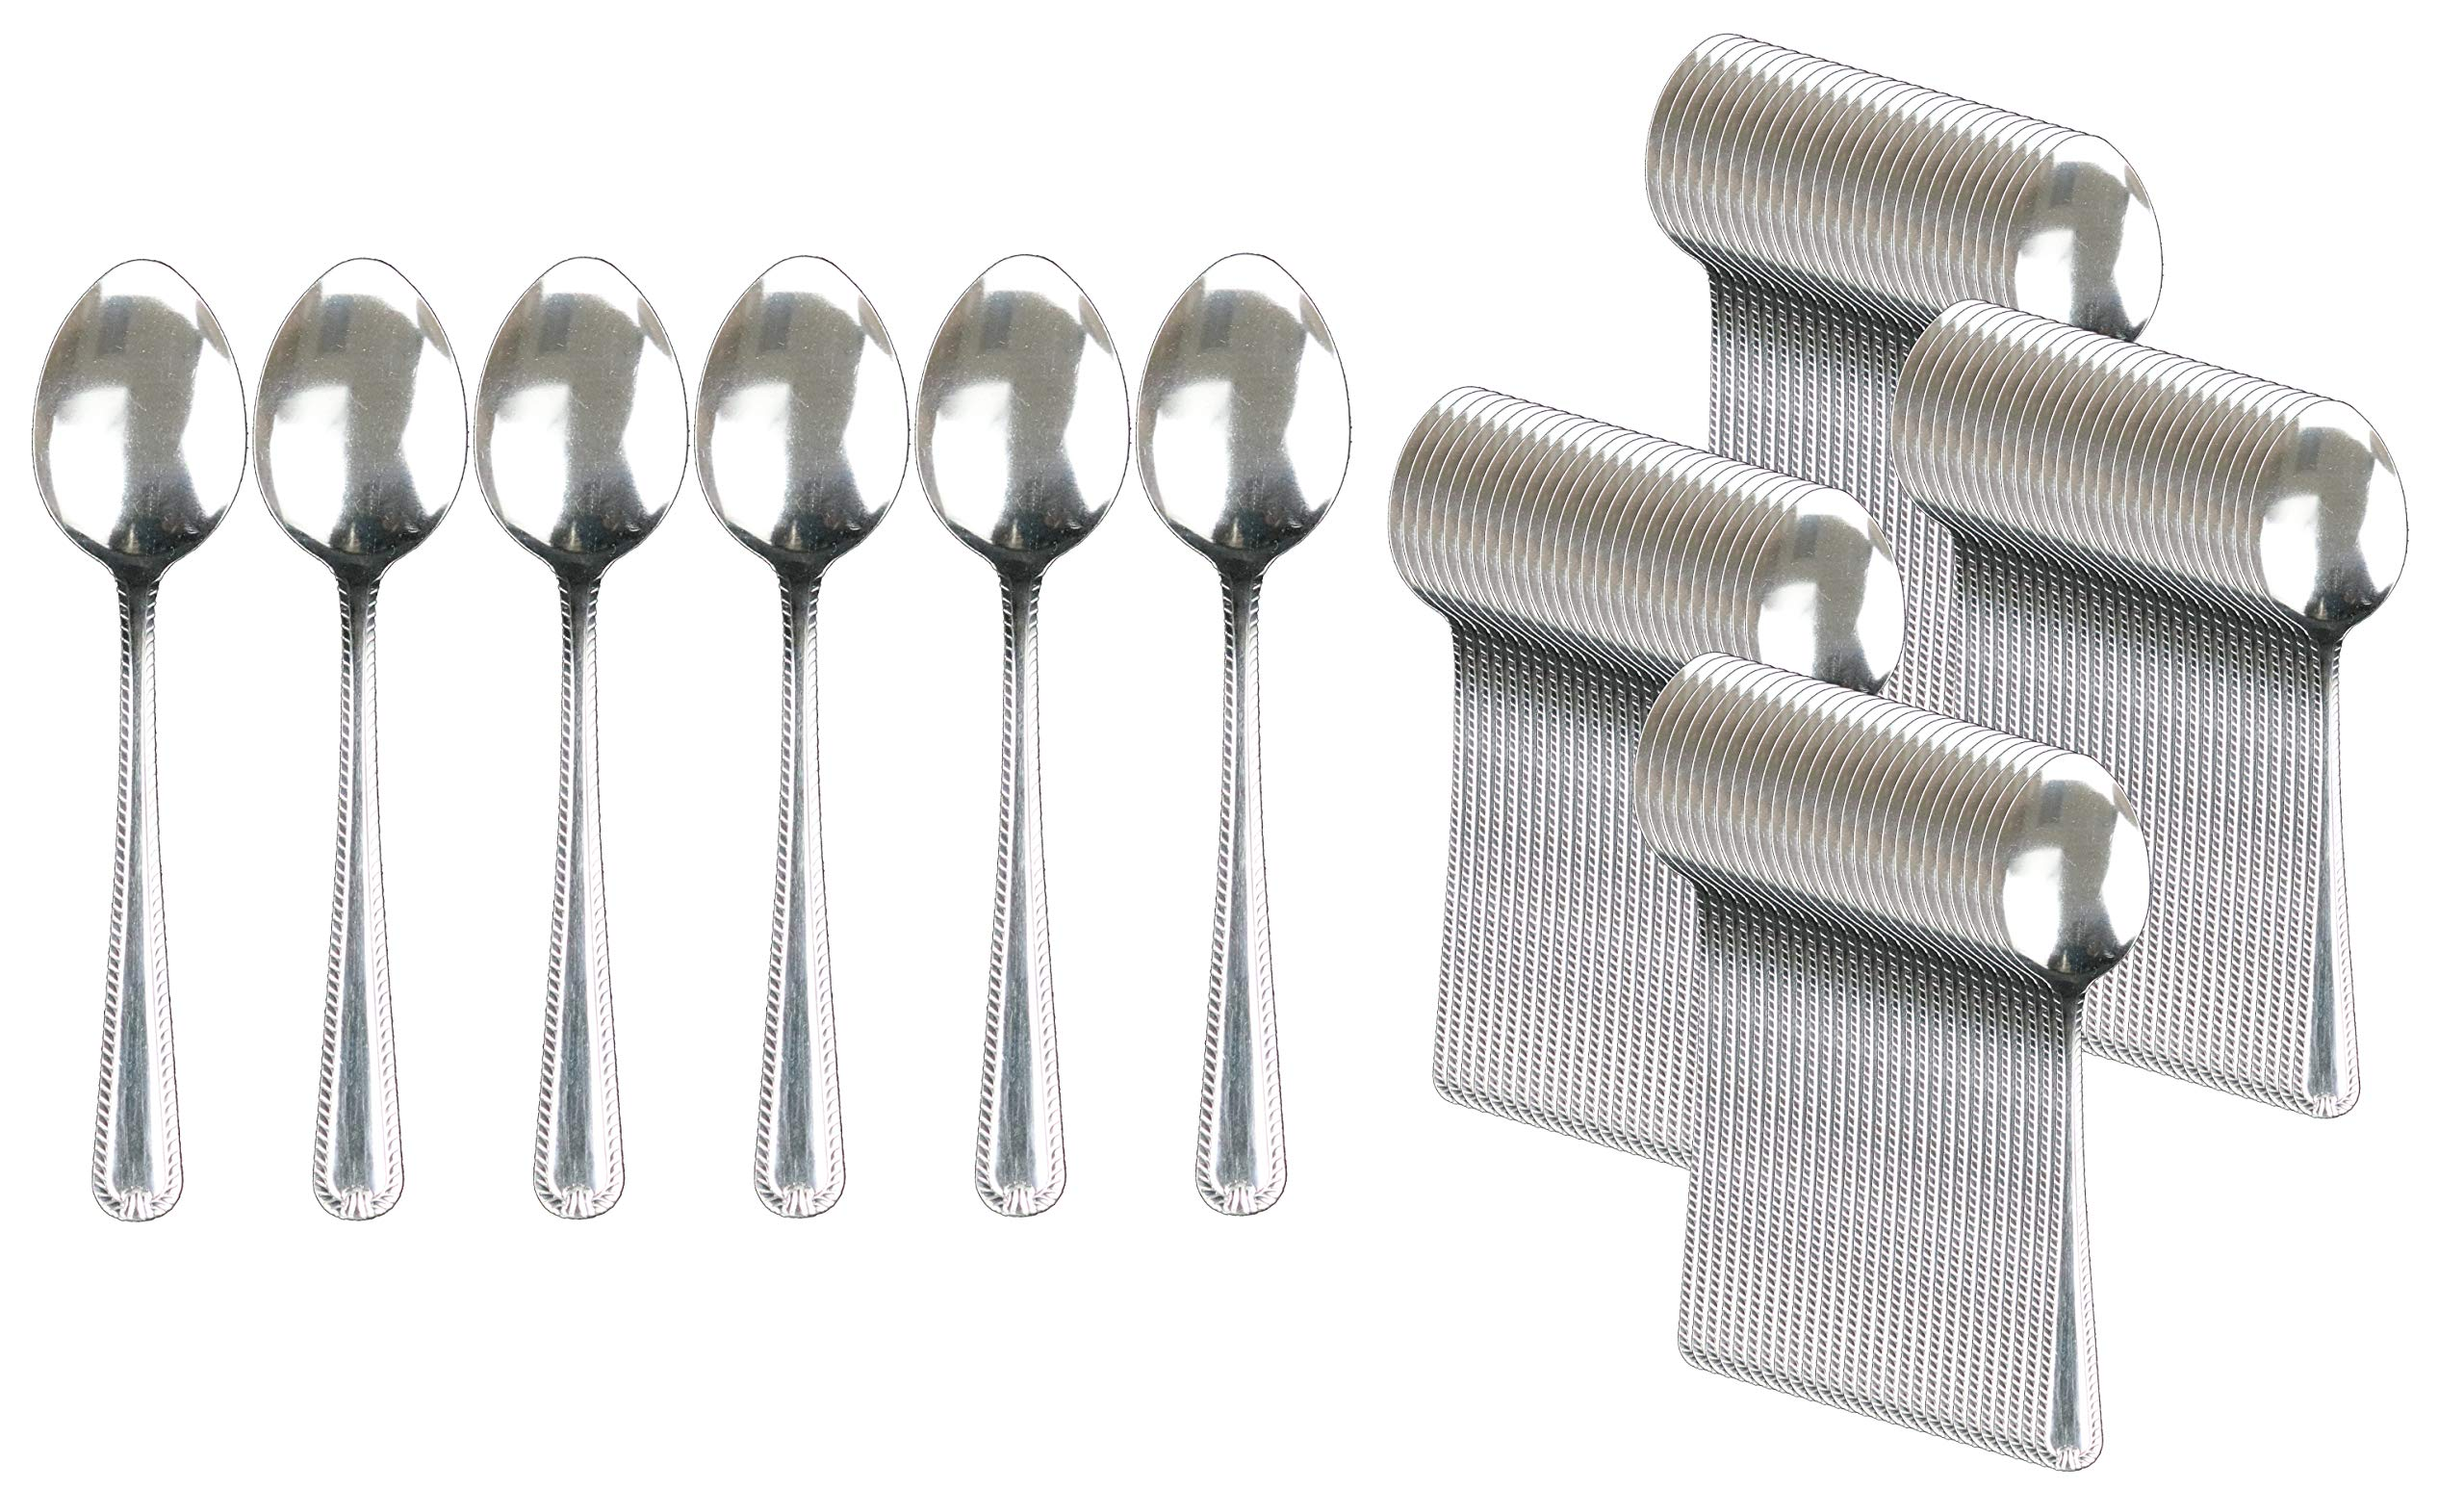 Handi-Ware Stainless Steel Cutlery - Multi-Pack Bulk - Tumble Finish - Commercial Use (120, Dinner Spoon)